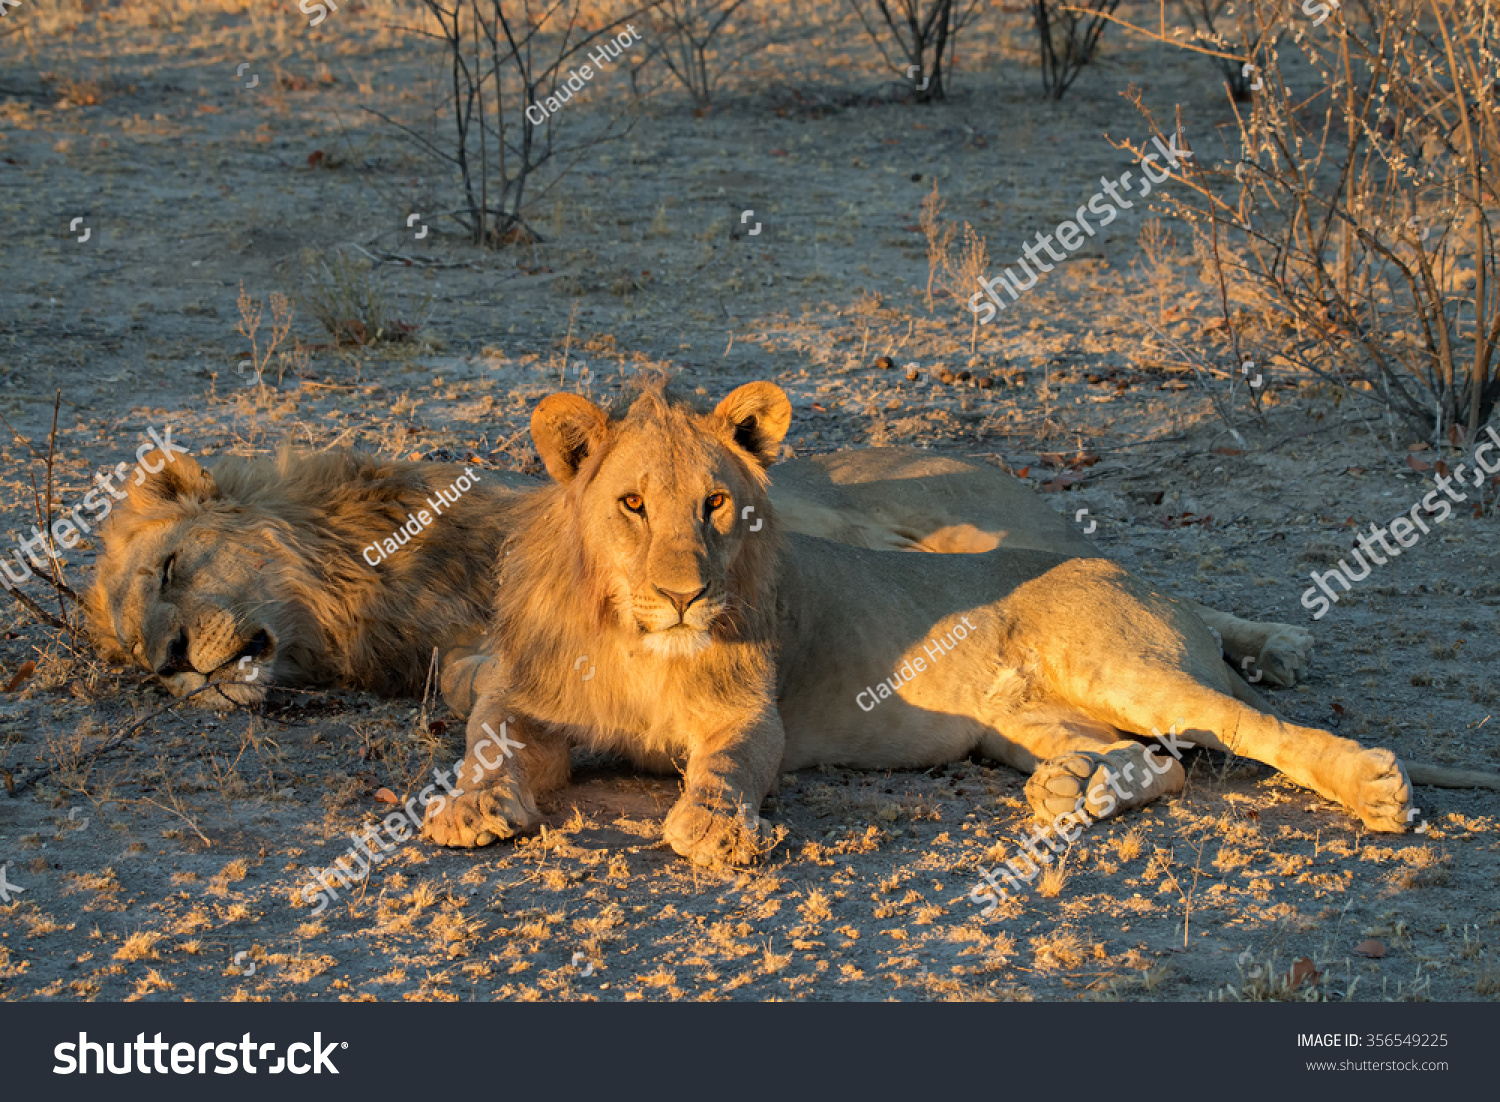 Young aggressive male lion (Panthera leo) with sleeping father at sunset in Etosha National Park, Namibia